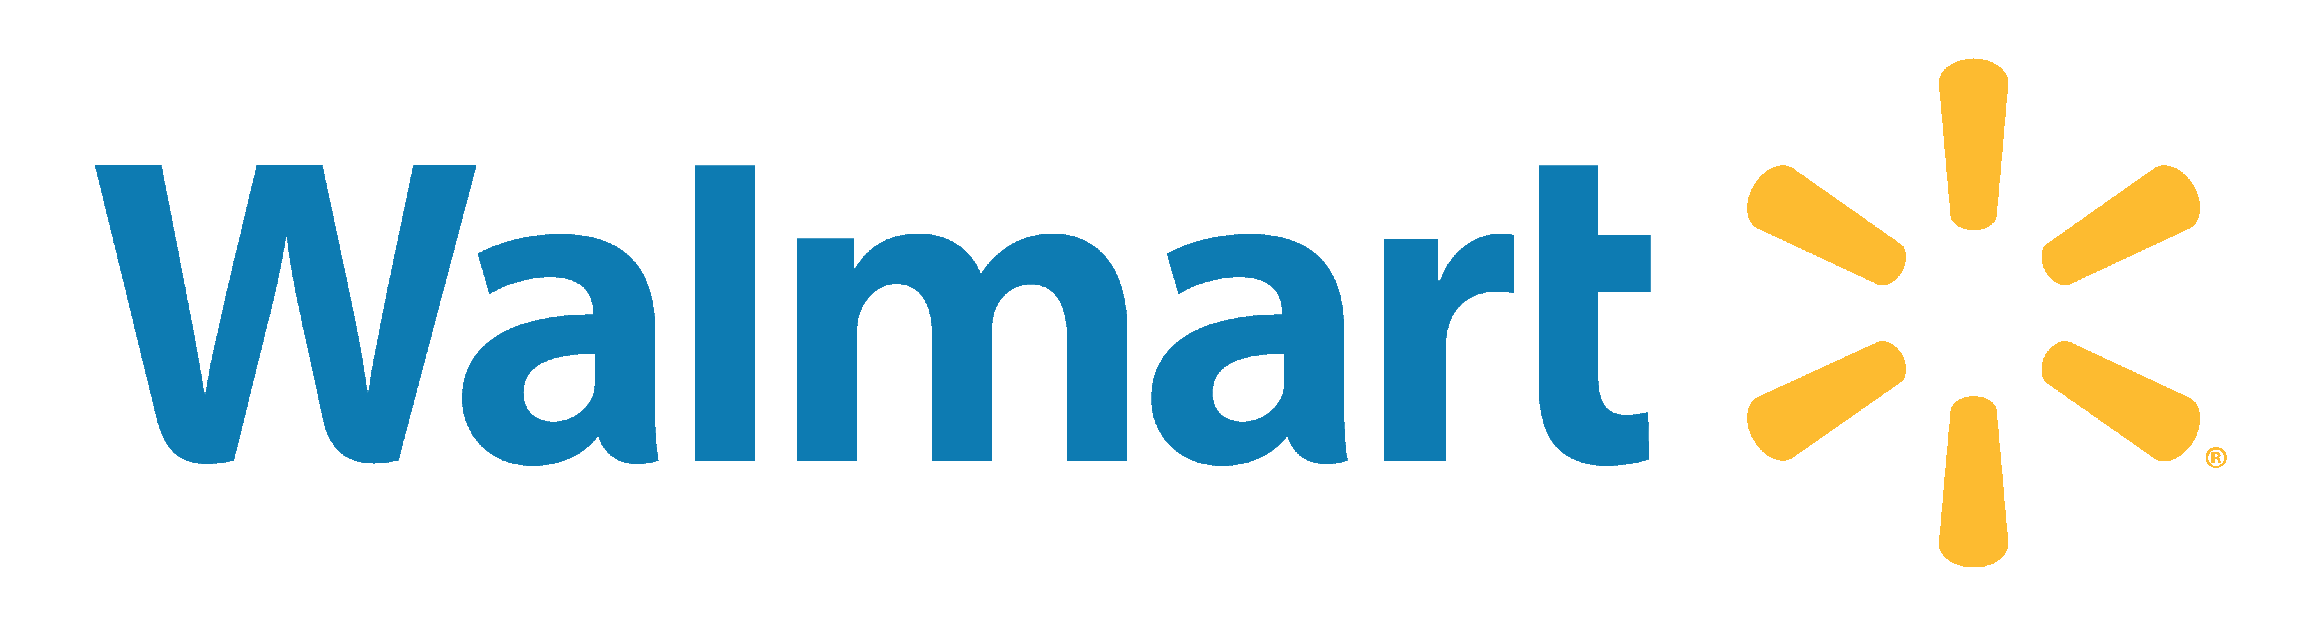 Walmart logo png. Symbol meaning history and